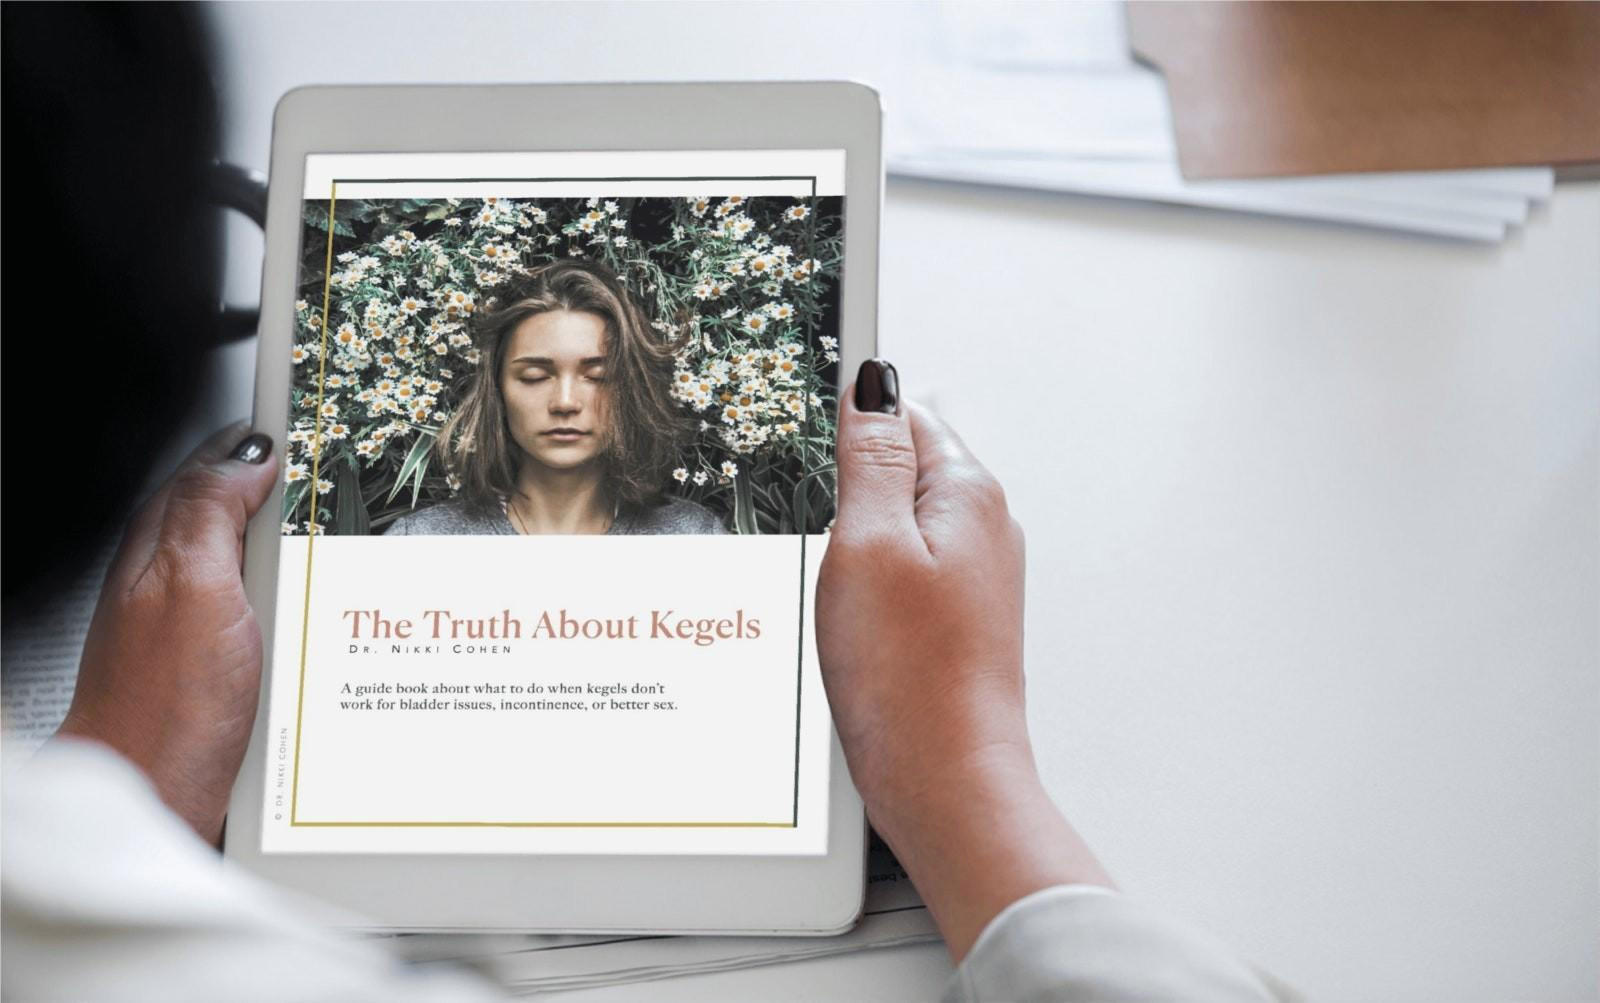 The Truth About Kegels by Dr Nikki Cohen